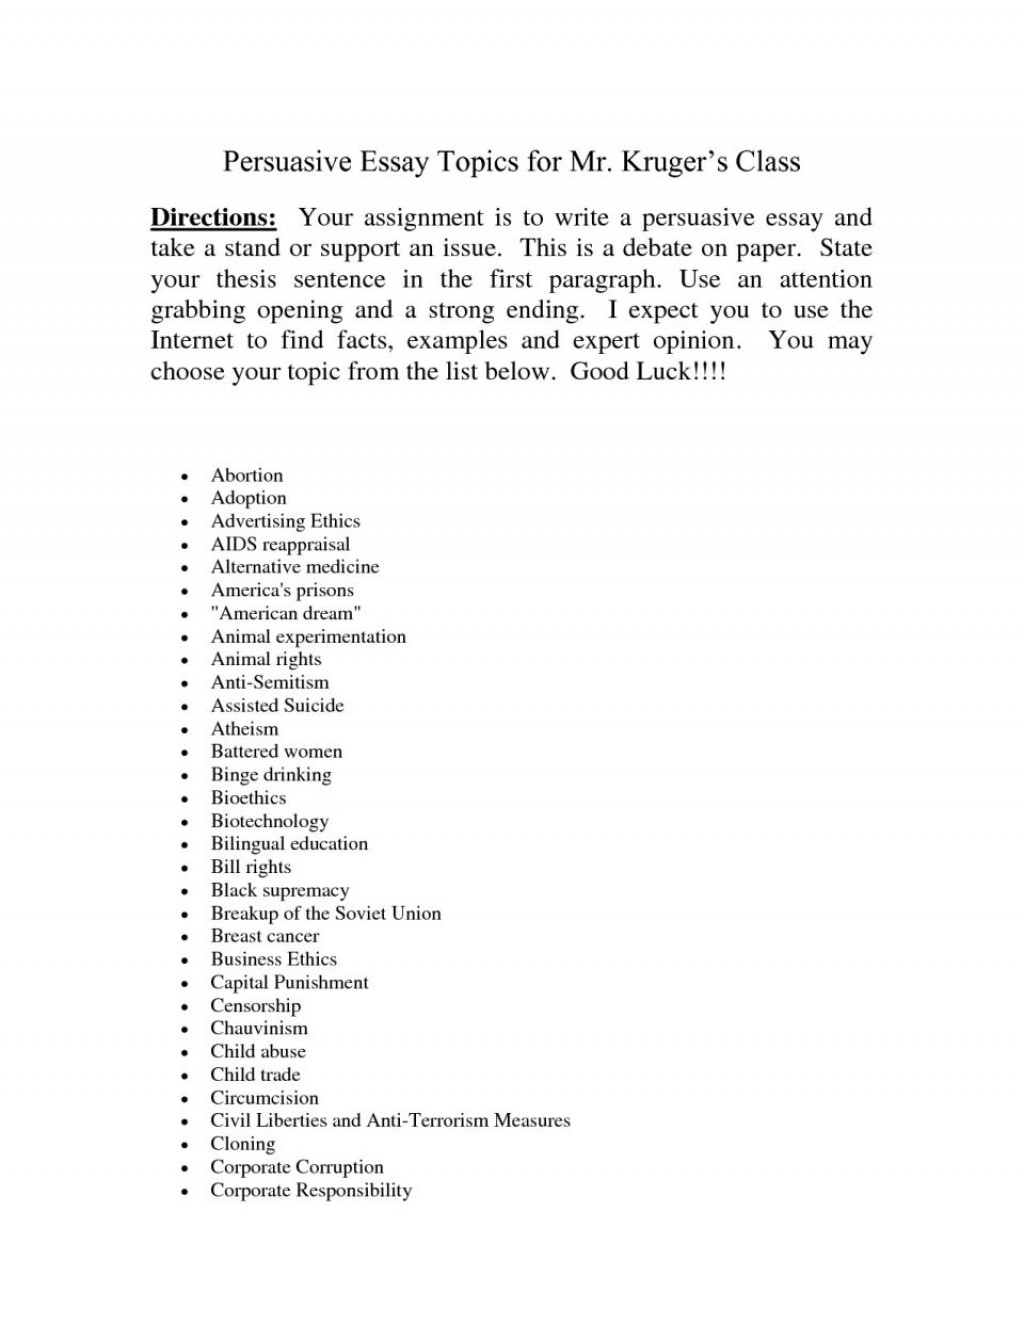 014 Research Paper Topic For Essay Barca Fontanacountryinn Within Good Persuasive Narrative Topics To Write Abo Easy About Personal Descriptive Informative Synthesis College 960x1242 Marvelous Business Papers Workplace Diversity Communication Large